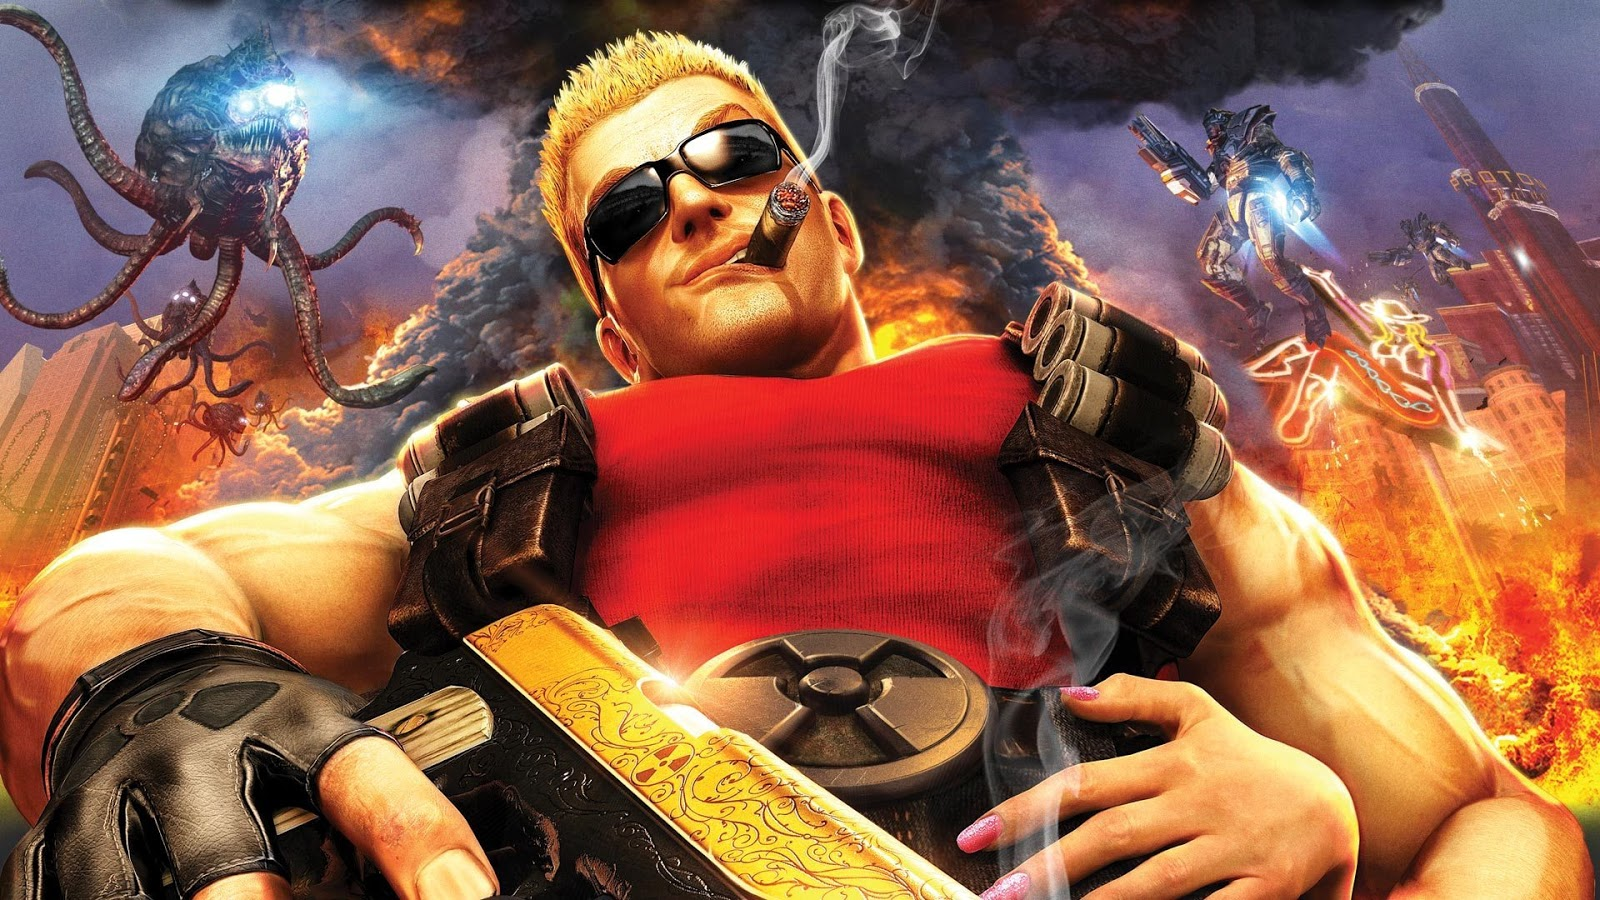 You are supposed to be here! 22 года релизу легендарной игры Duke Nukem 3D